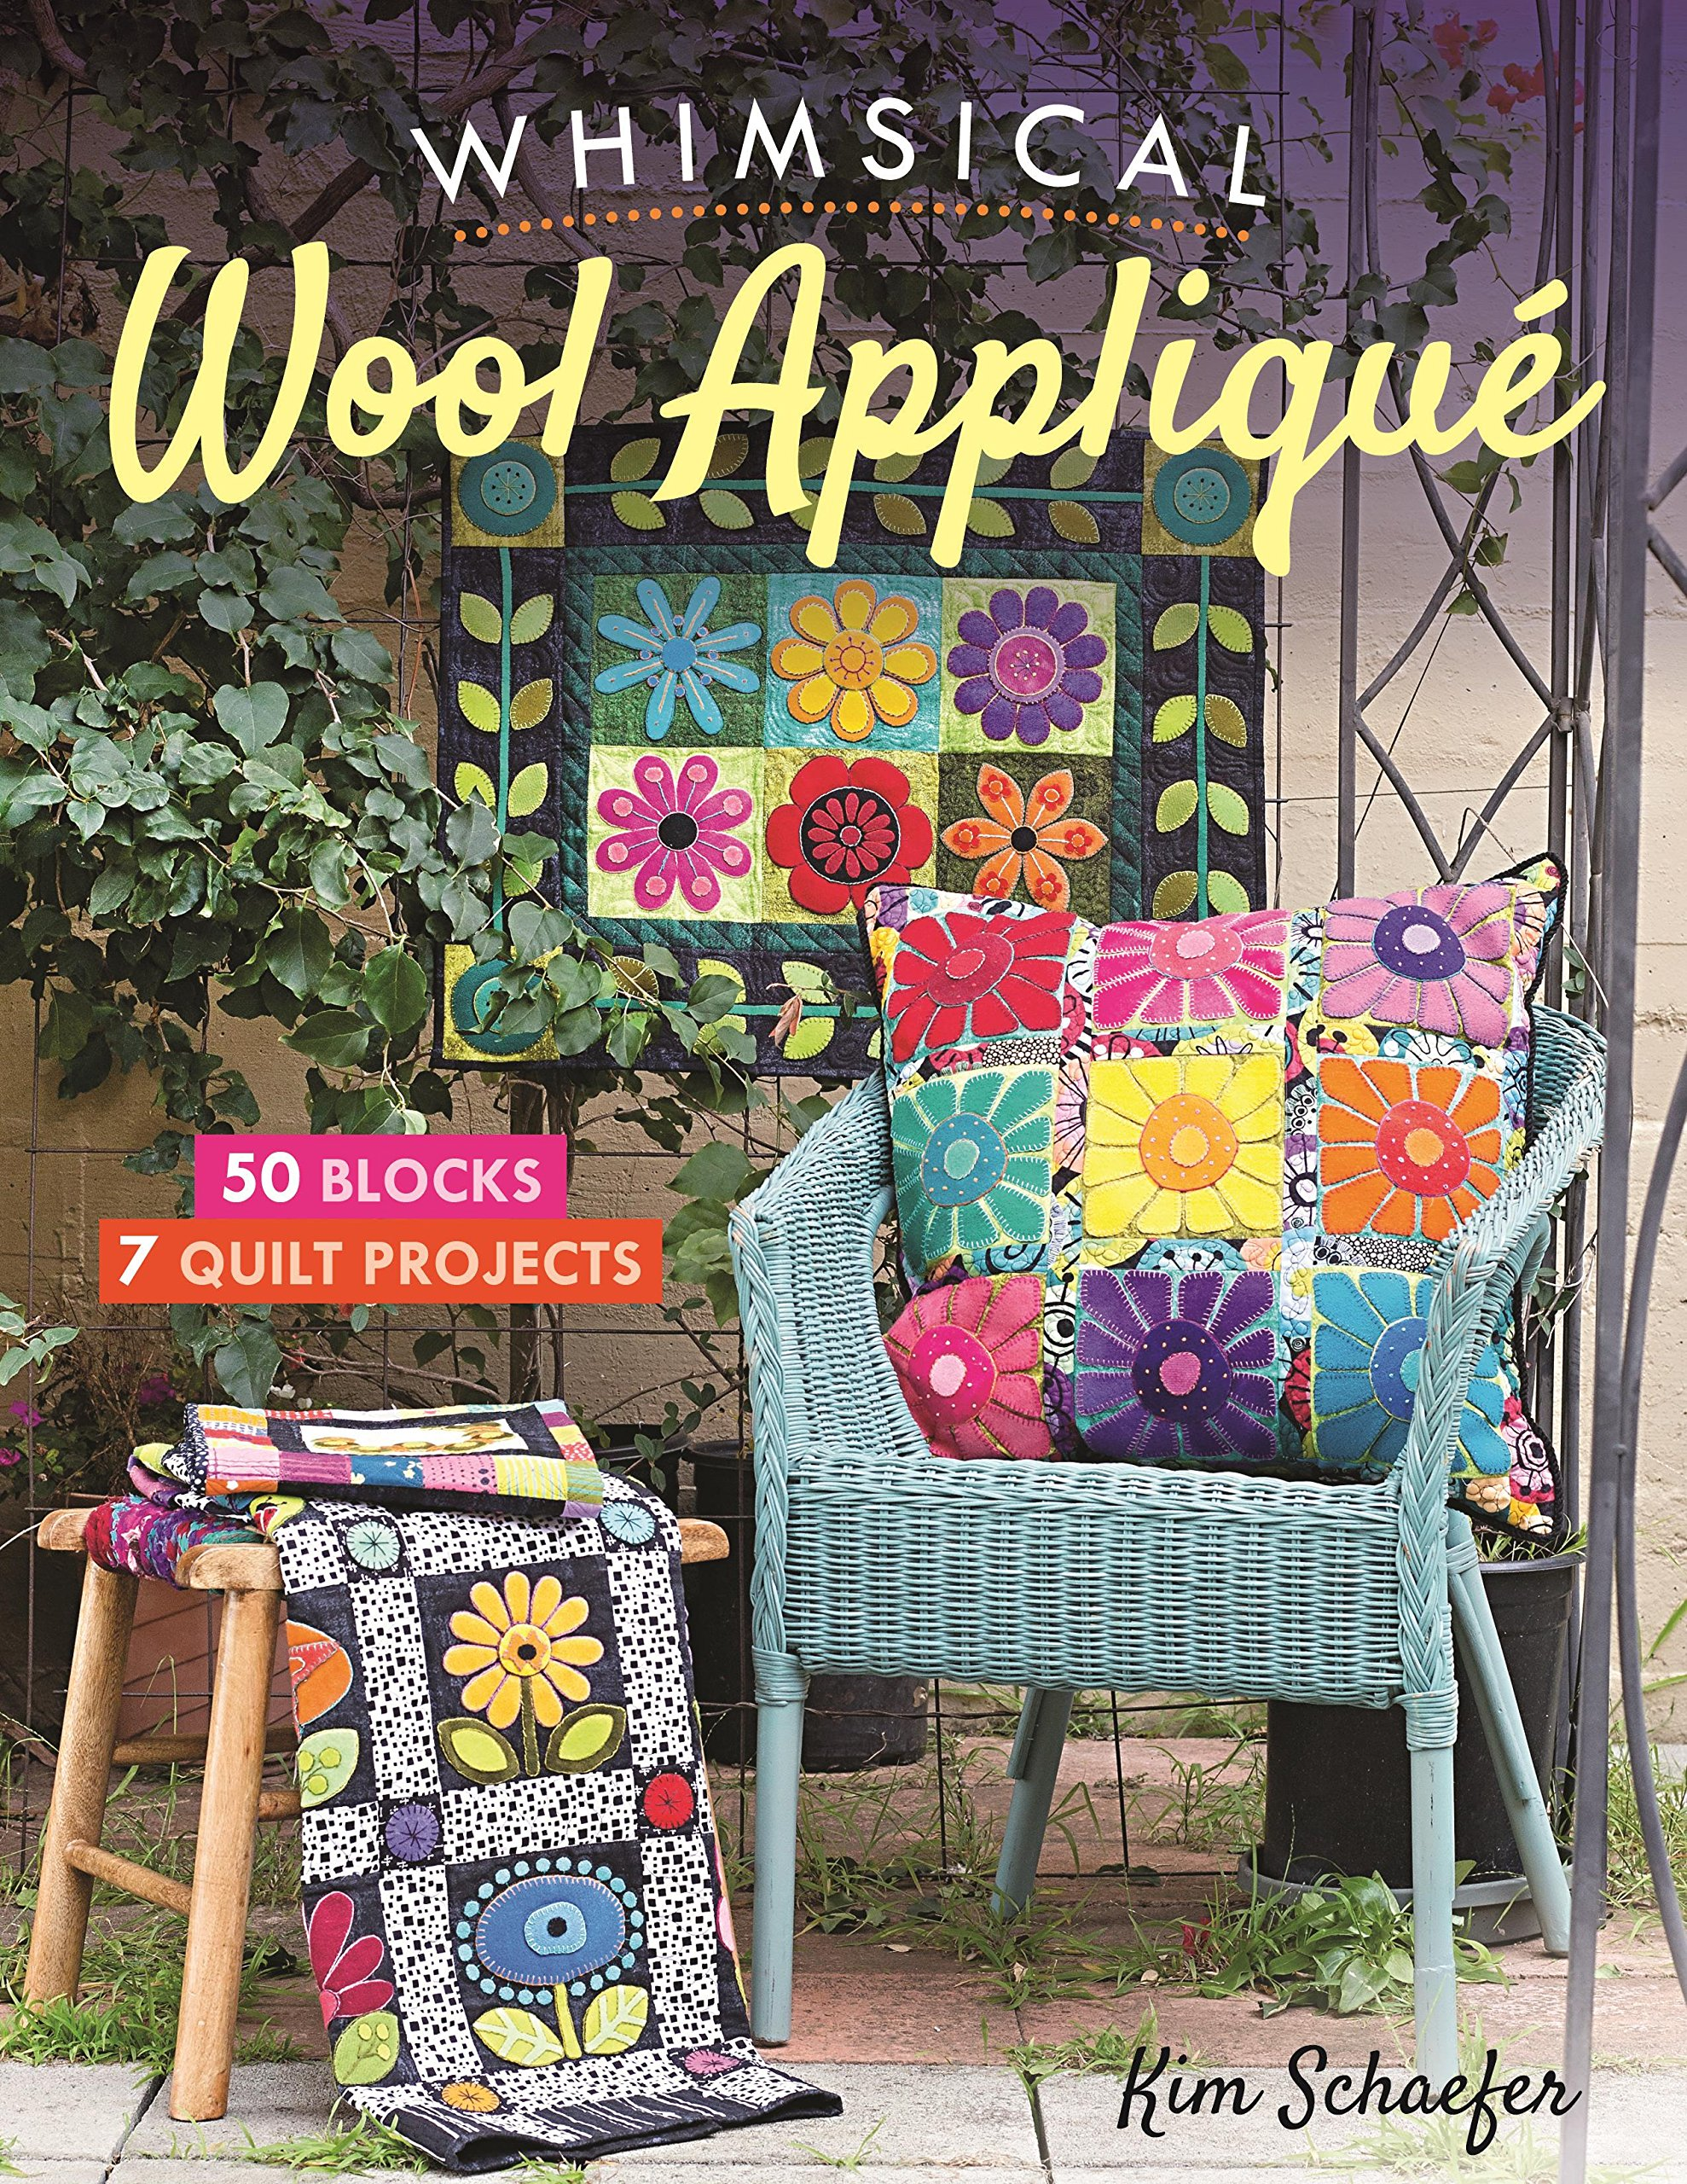 whimsical-wool-appliqu-50-blocks-7-quilt-projects